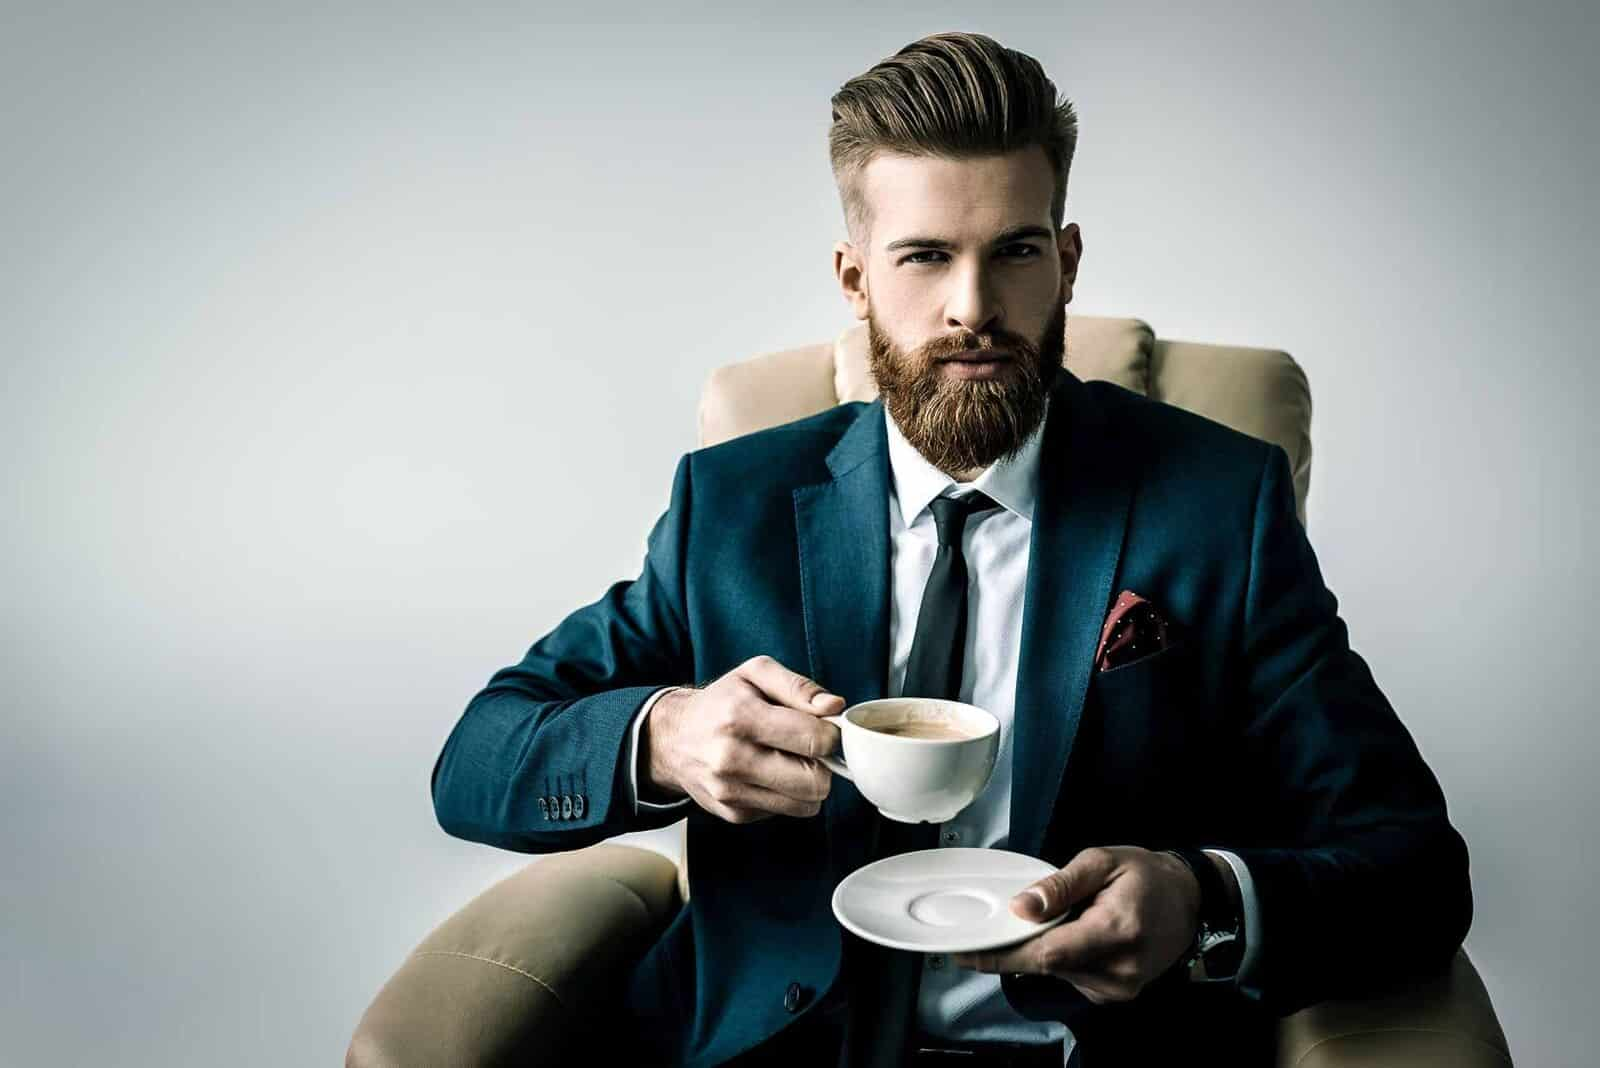 masculine men traits a decent man sitting while drinking coffee